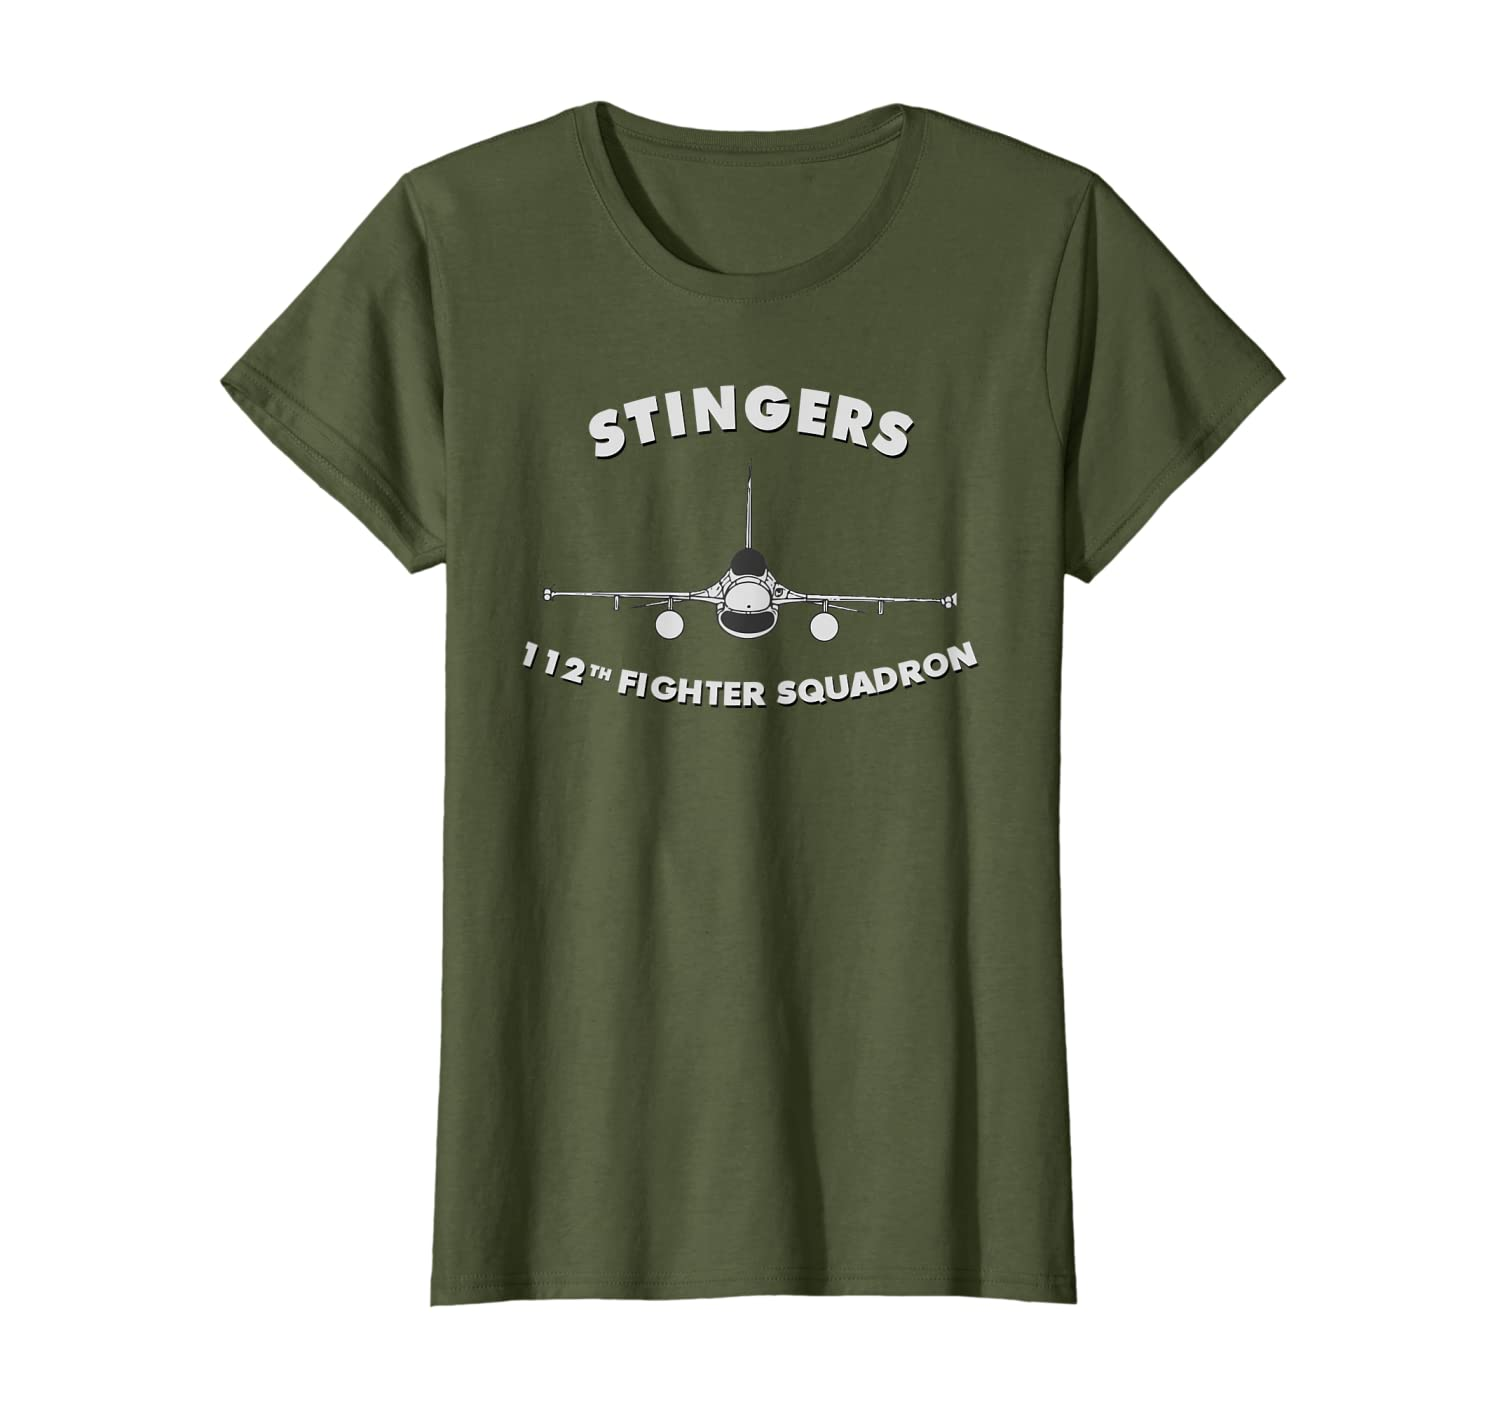 112th Fighter Squadron The Stingers F-16 T-shirt